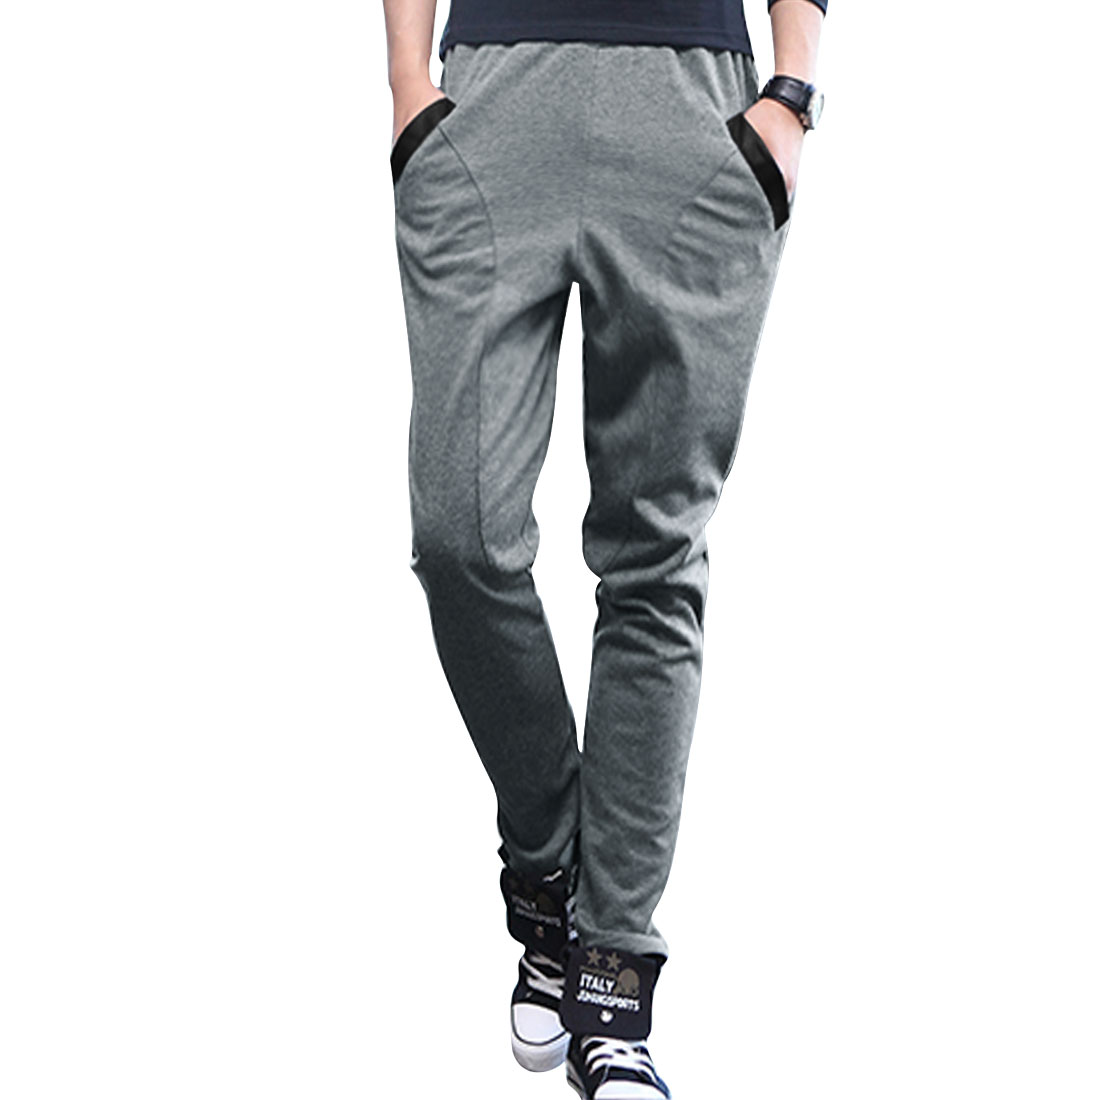 Man Elastic Waist Mid Rise Two Top Pockets Front Gray Pants W27